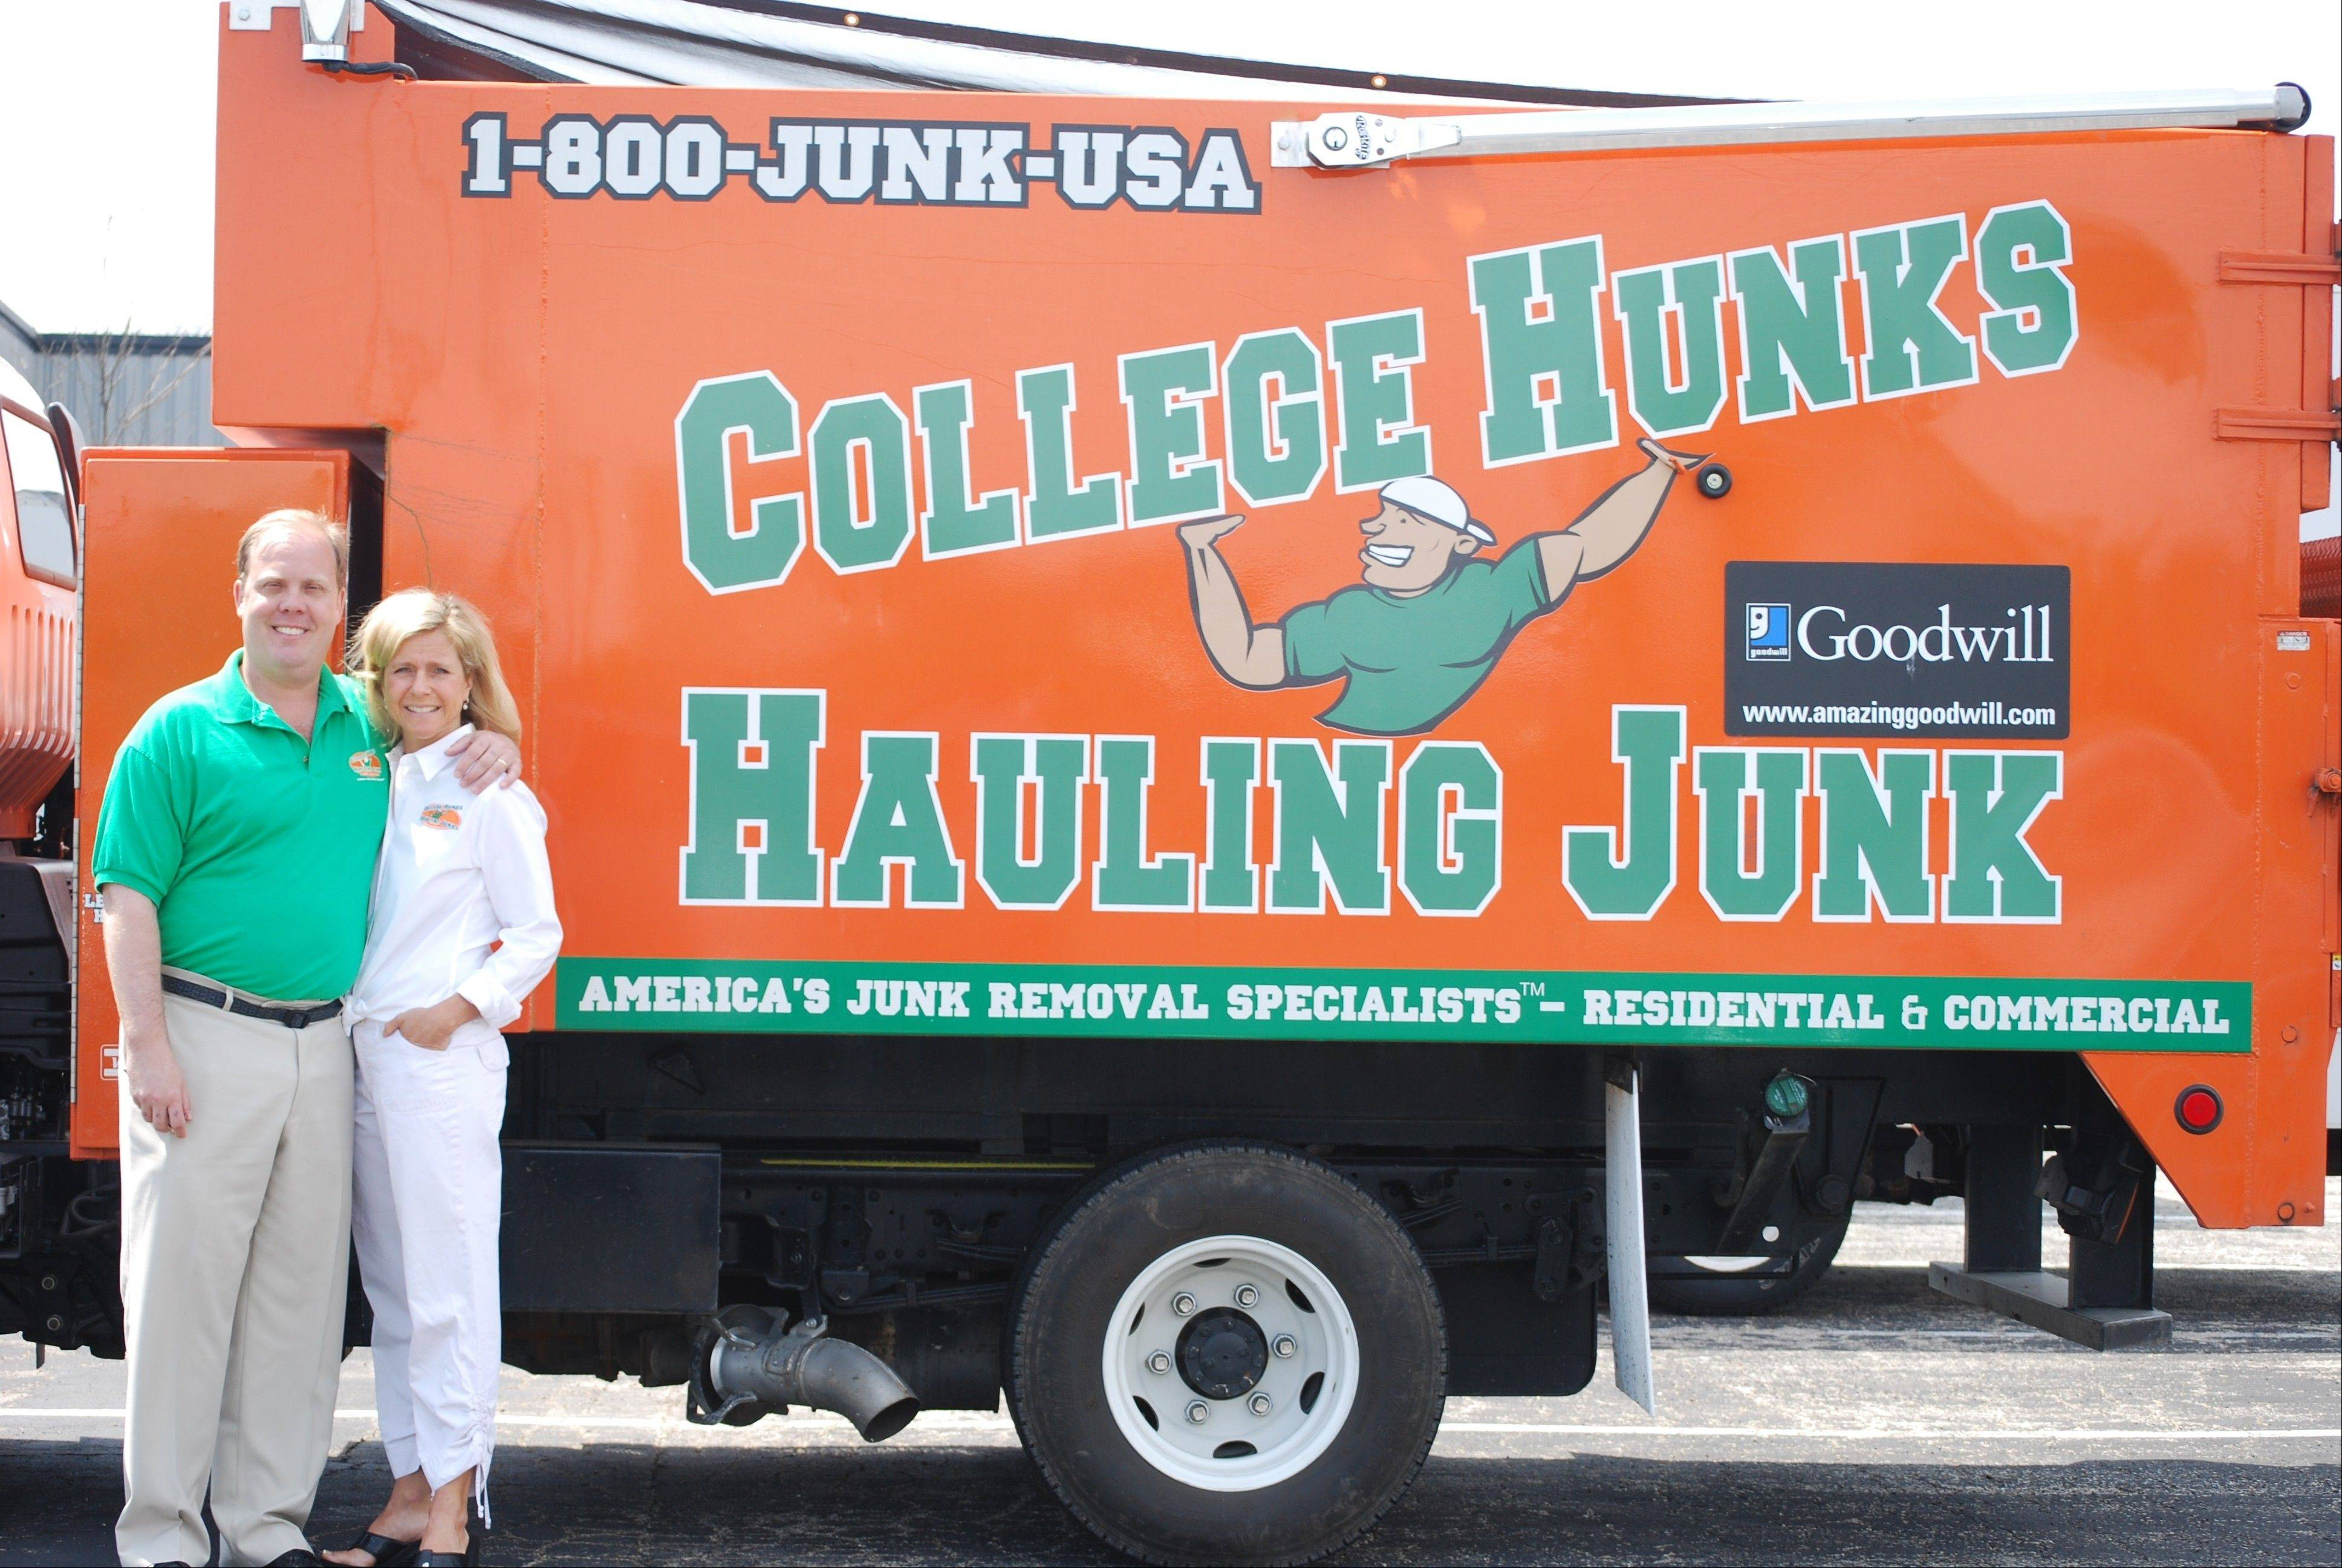 Matt and Sheri Johnson, owners of the College Hunks Hauling Junk franchise in Lake County.